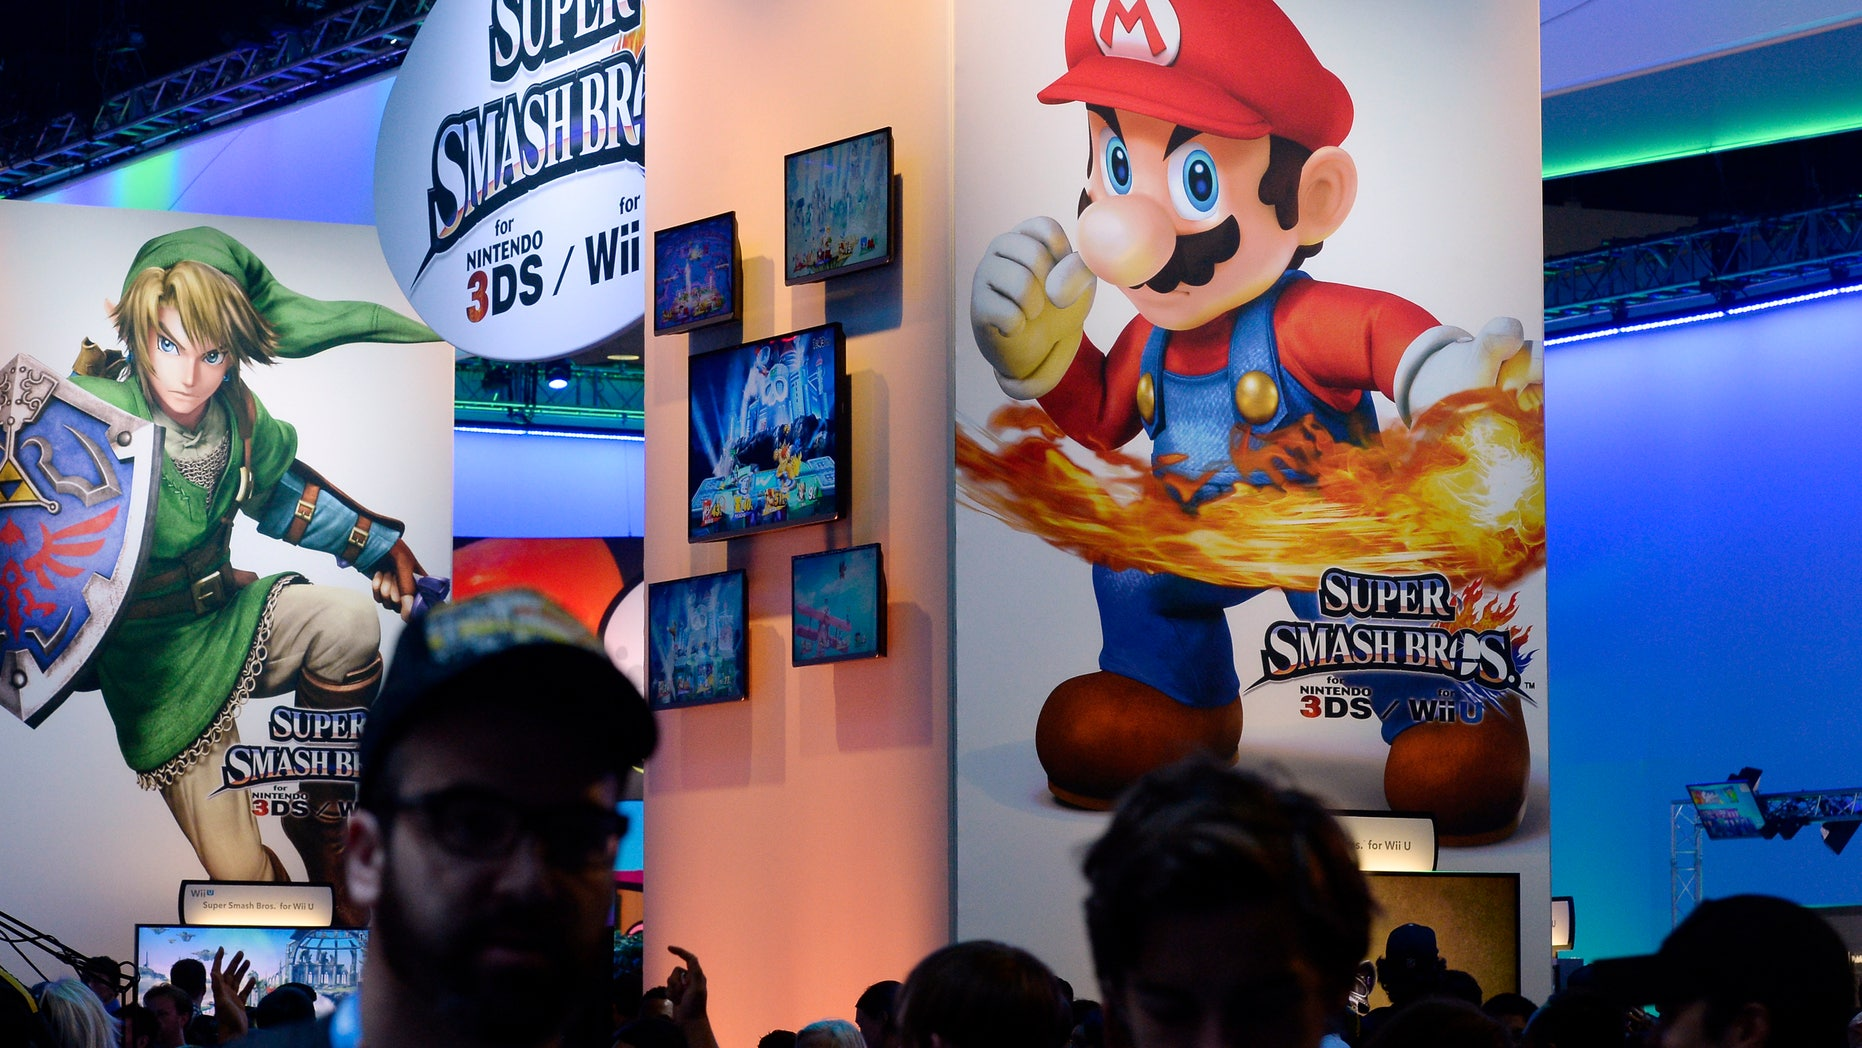 Attendees walk past Nintendo Co.'s Super Smash Bros. signage at the 2014 Electronic Entertainment Expo, known as E3, in Los Angeles, California June 11, 2014.